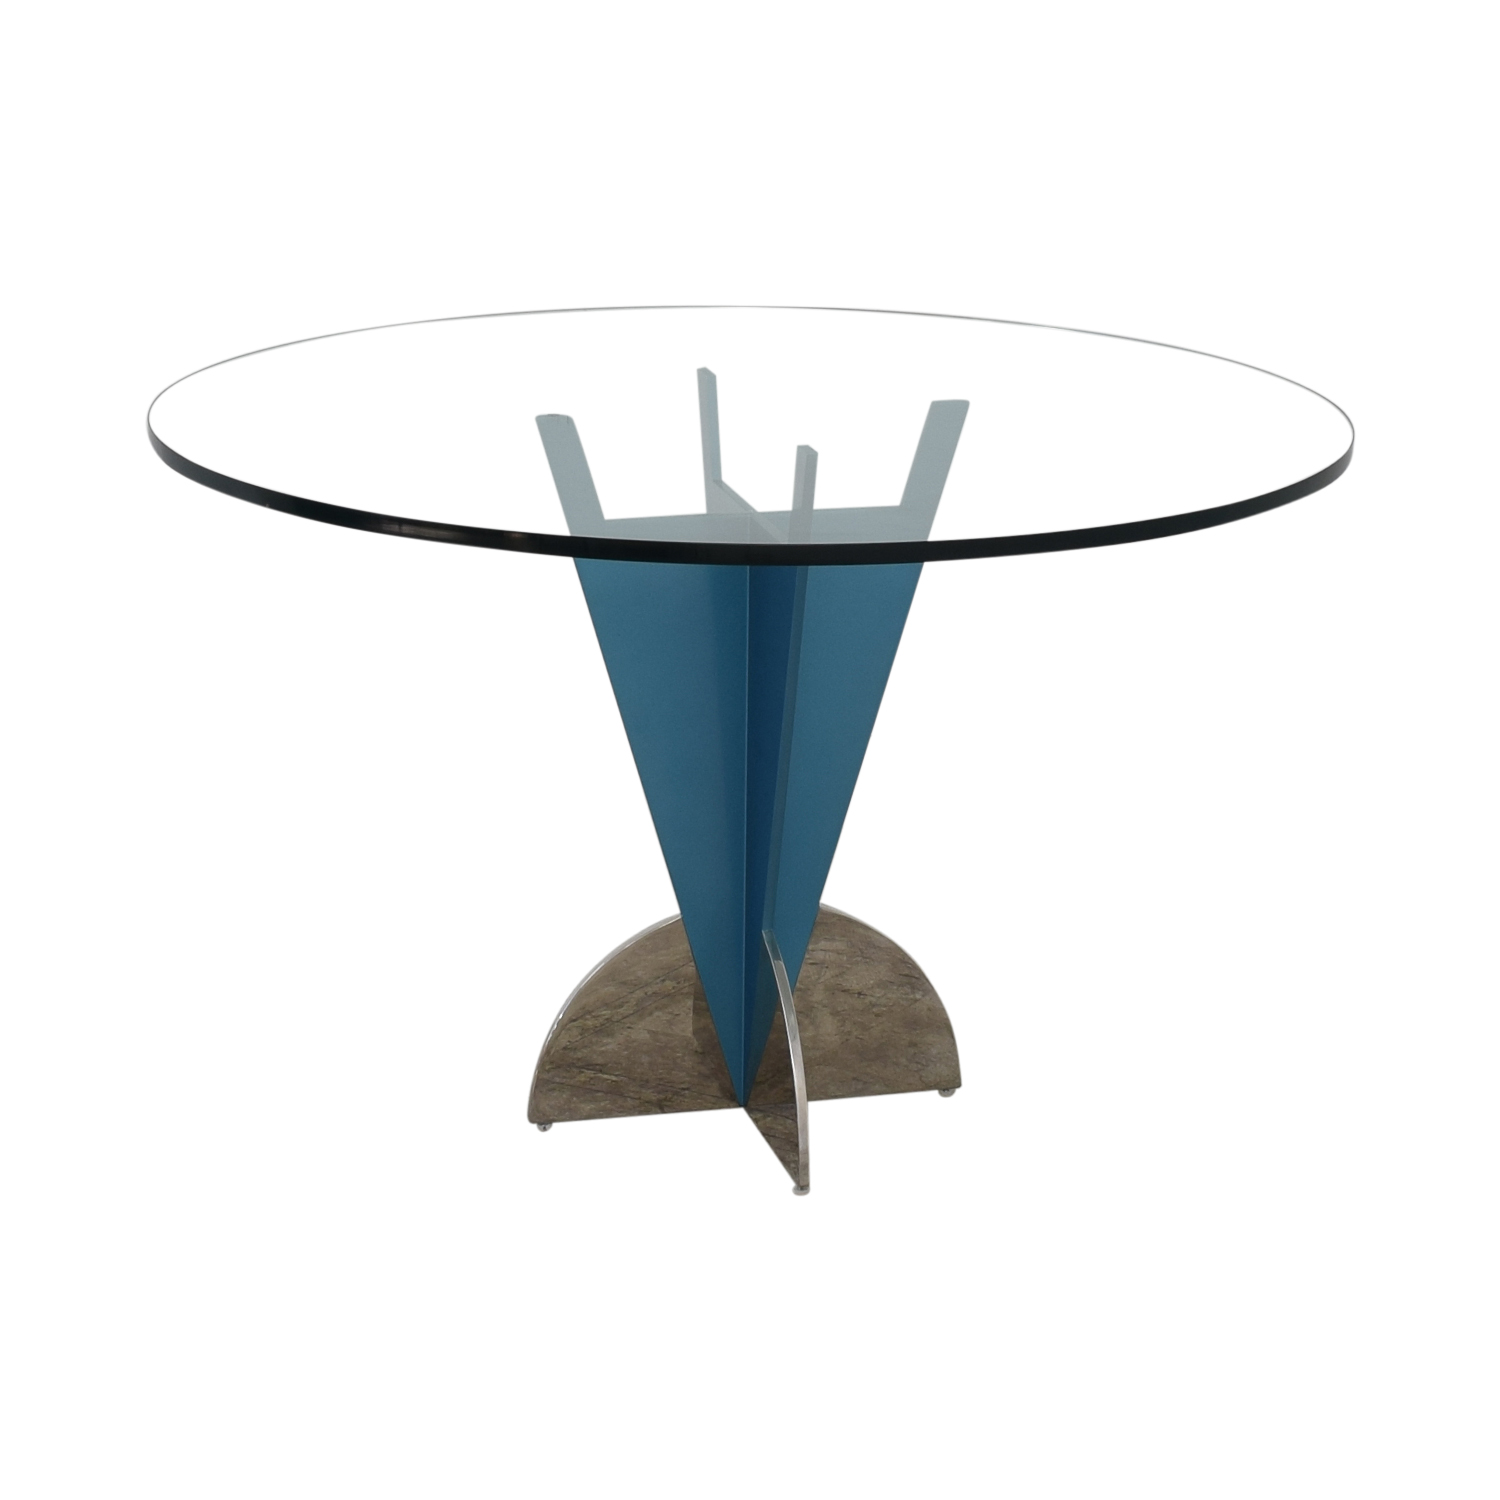 Fasem Fasem Glass Dining Table discount